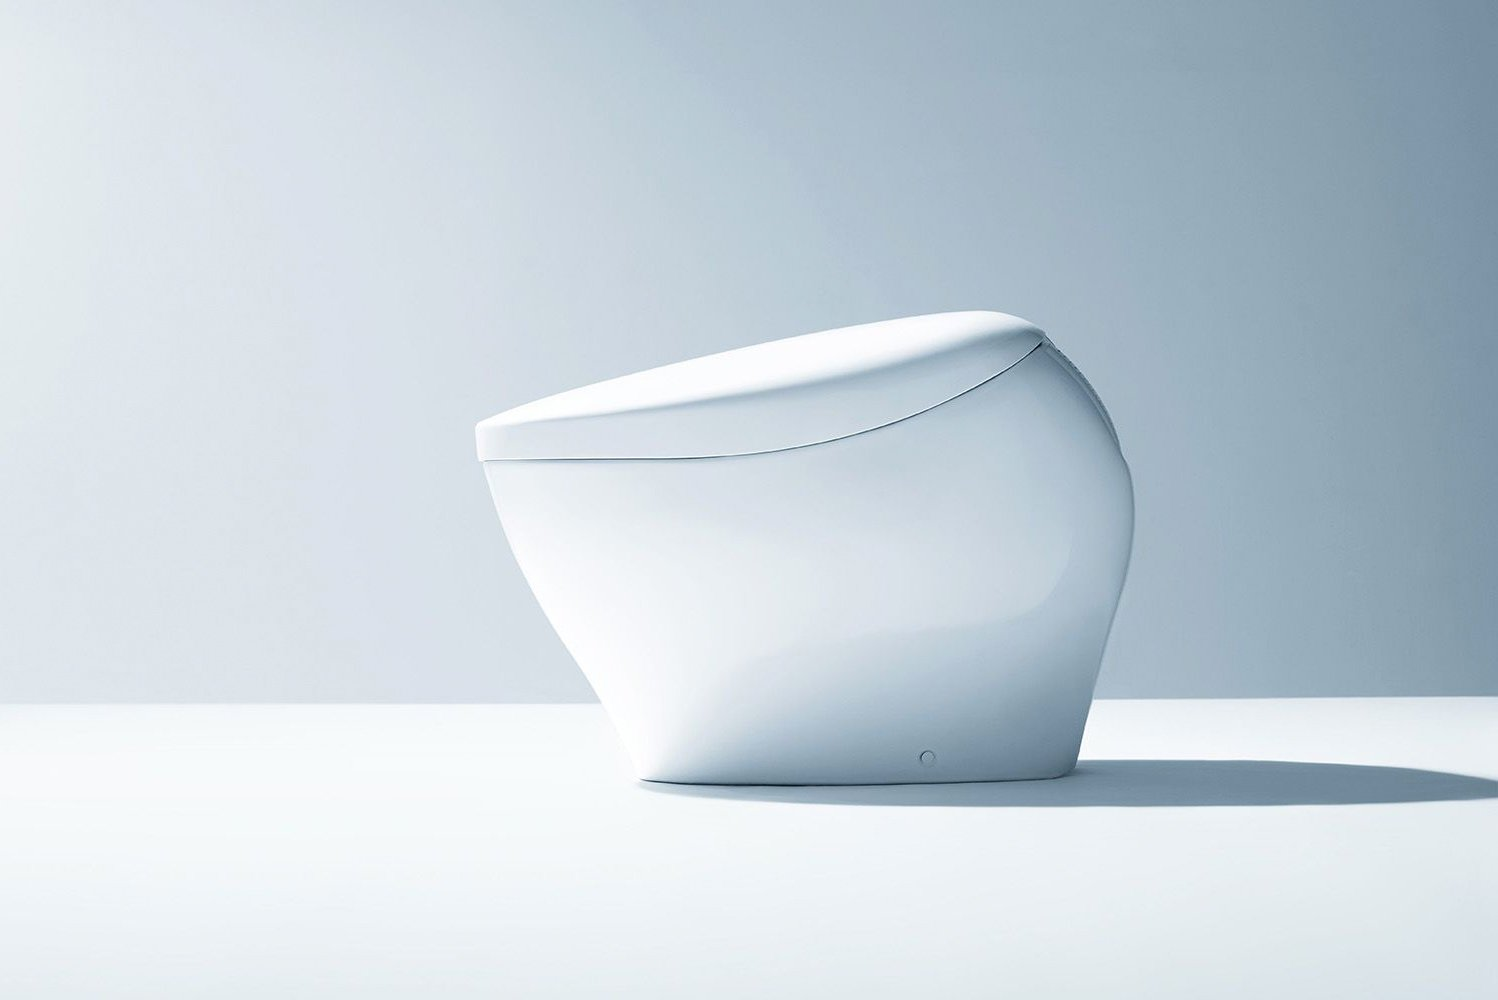 Introducing Neorest NX by Toto, an all-in-one intelligent toilet with personal cleaning technology.